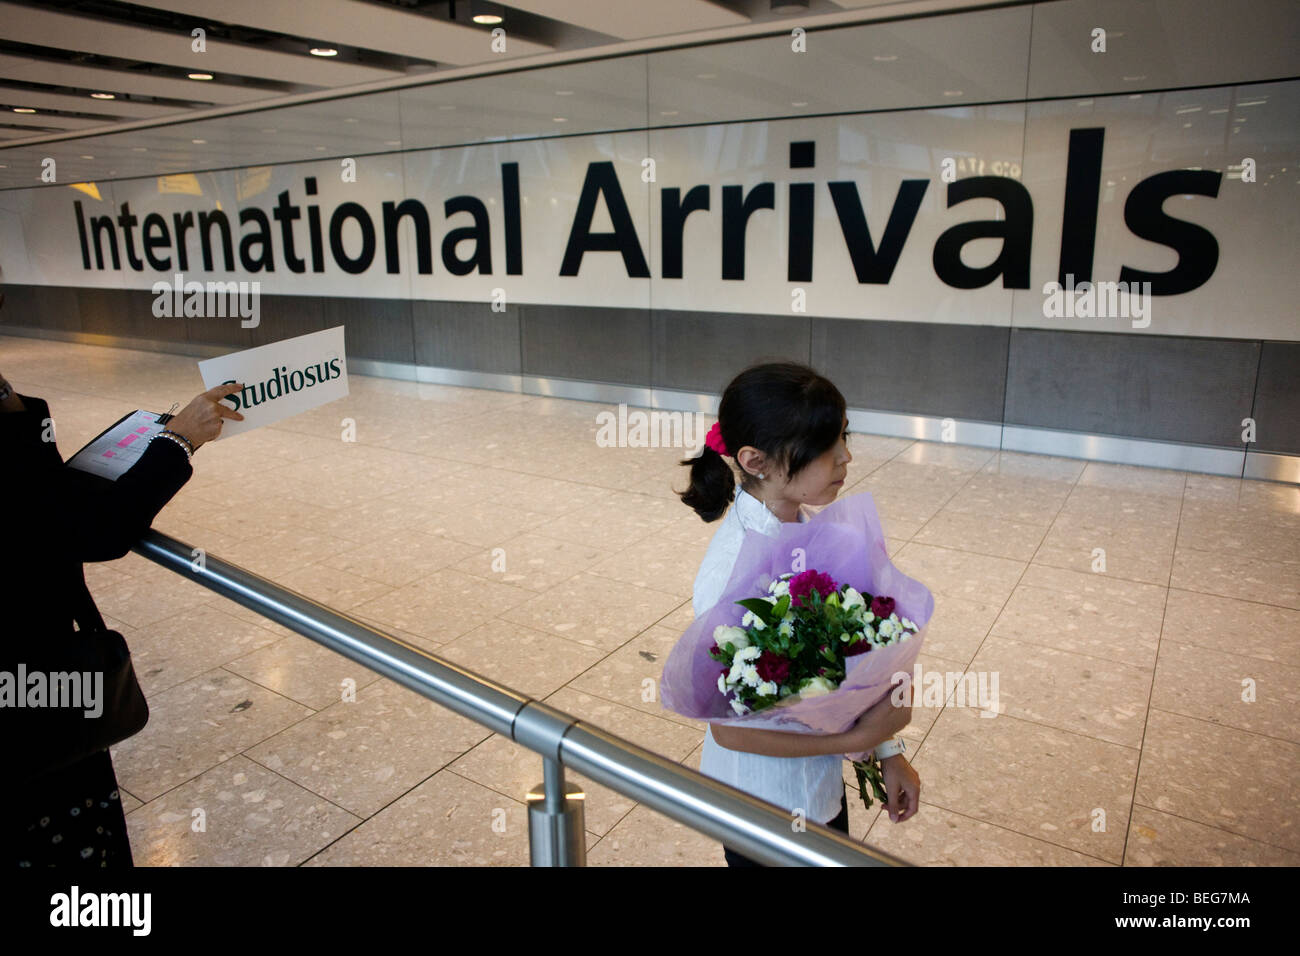 Awaiting loved-ones in International Arrivals concourse at Heathrow's terminal 5. - Stock Image